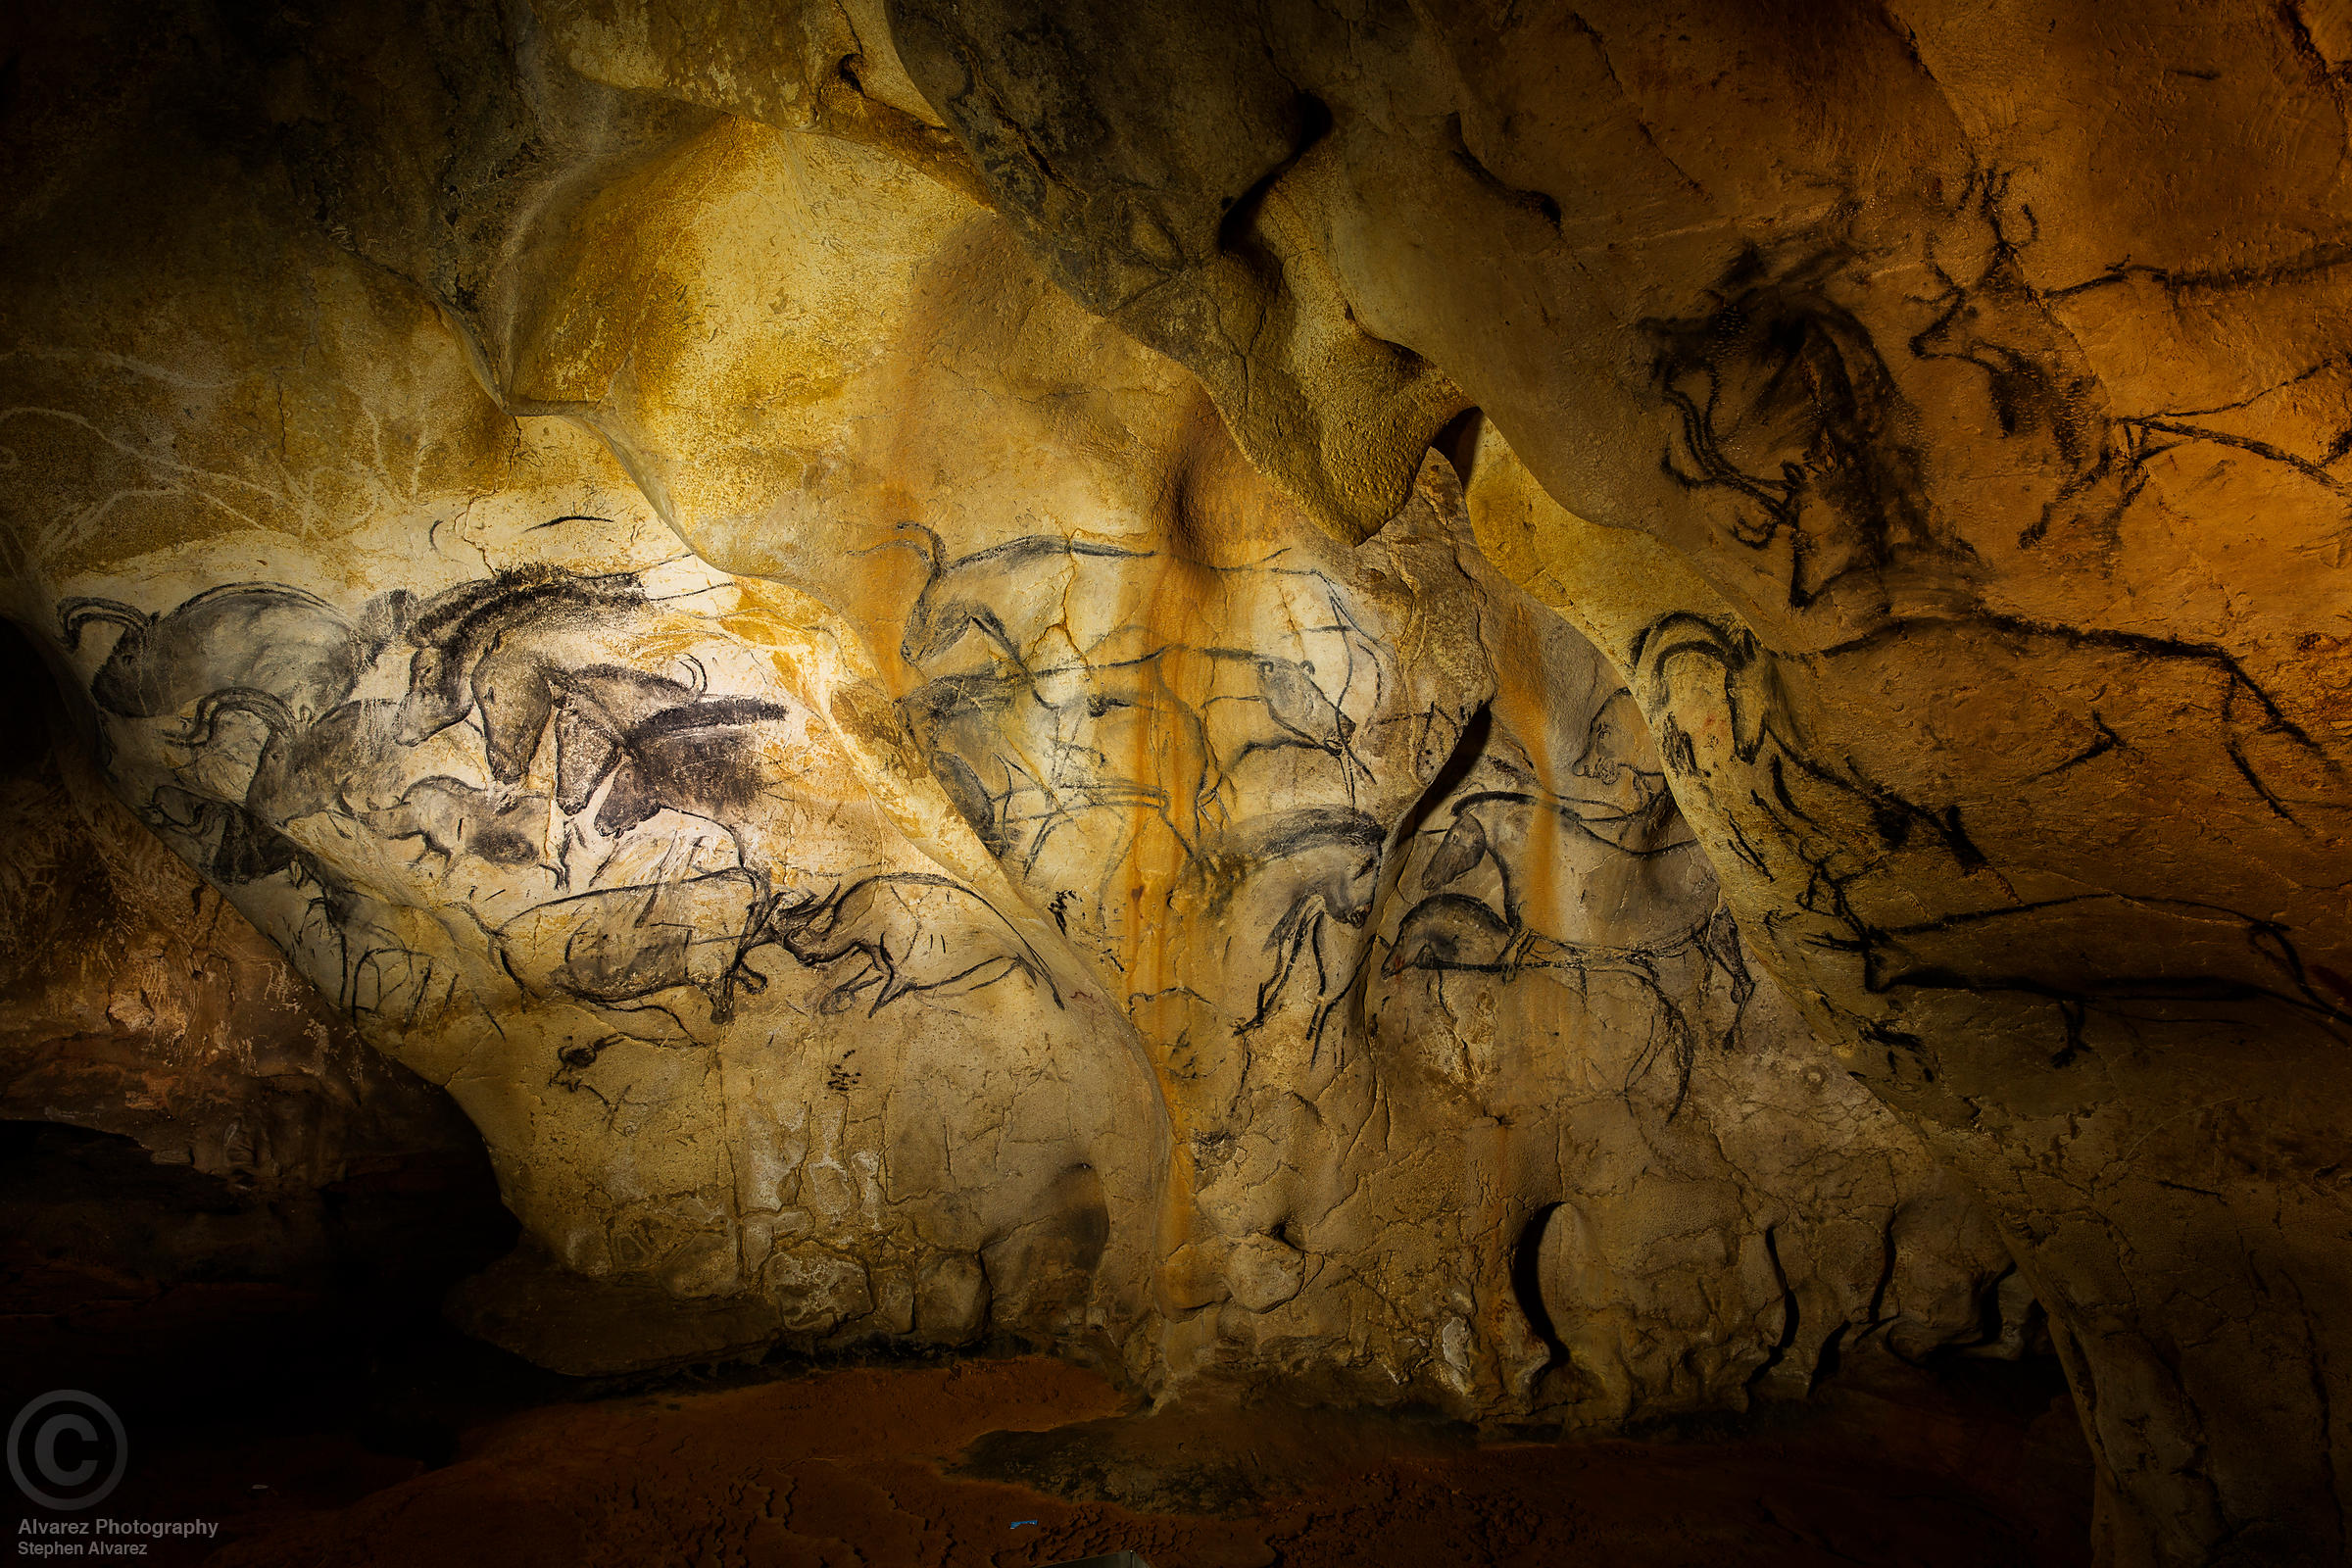 The Horse Panel in Chauvet Cave, Ardeche France. The charcaol in these paintings has been dated to 30,000 years BCE.